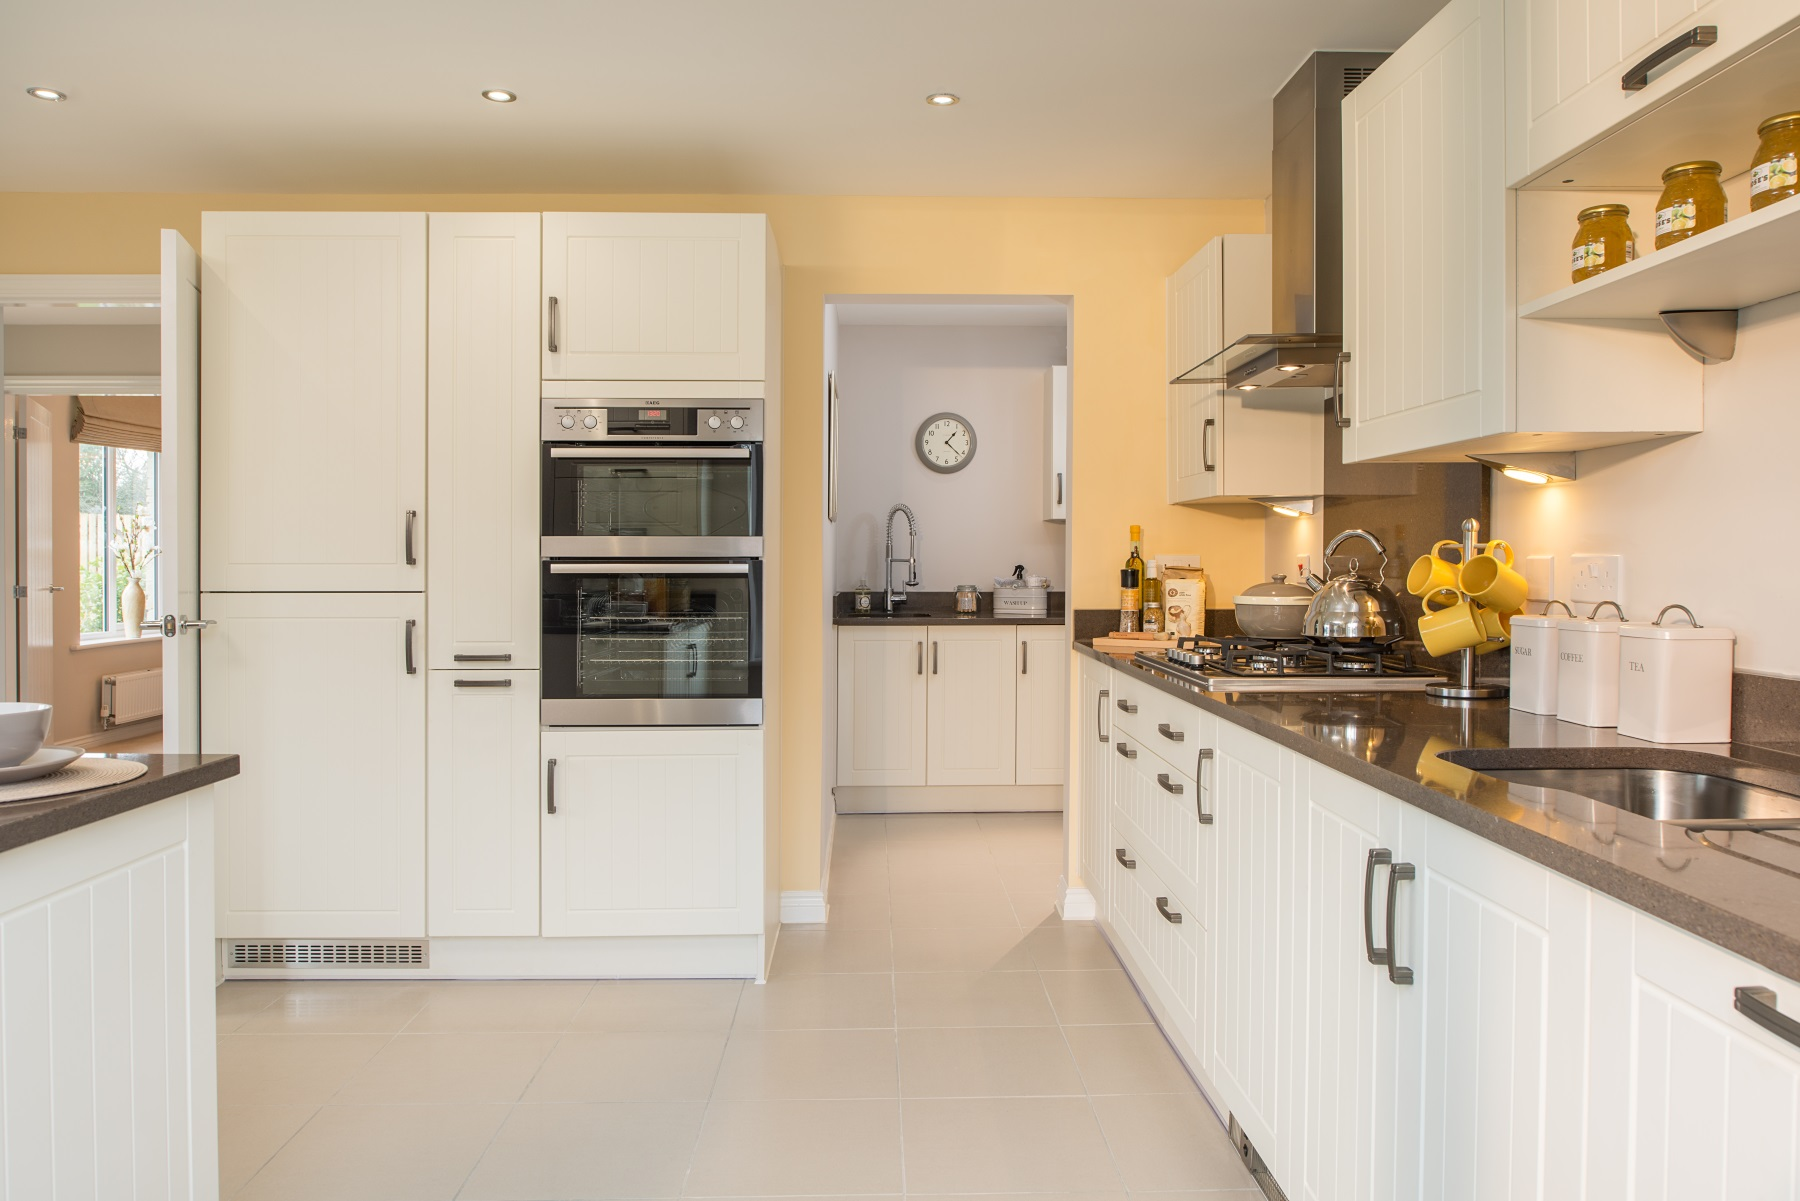 TW Exeter - Chy An Dowr - Kentdale example kitchen